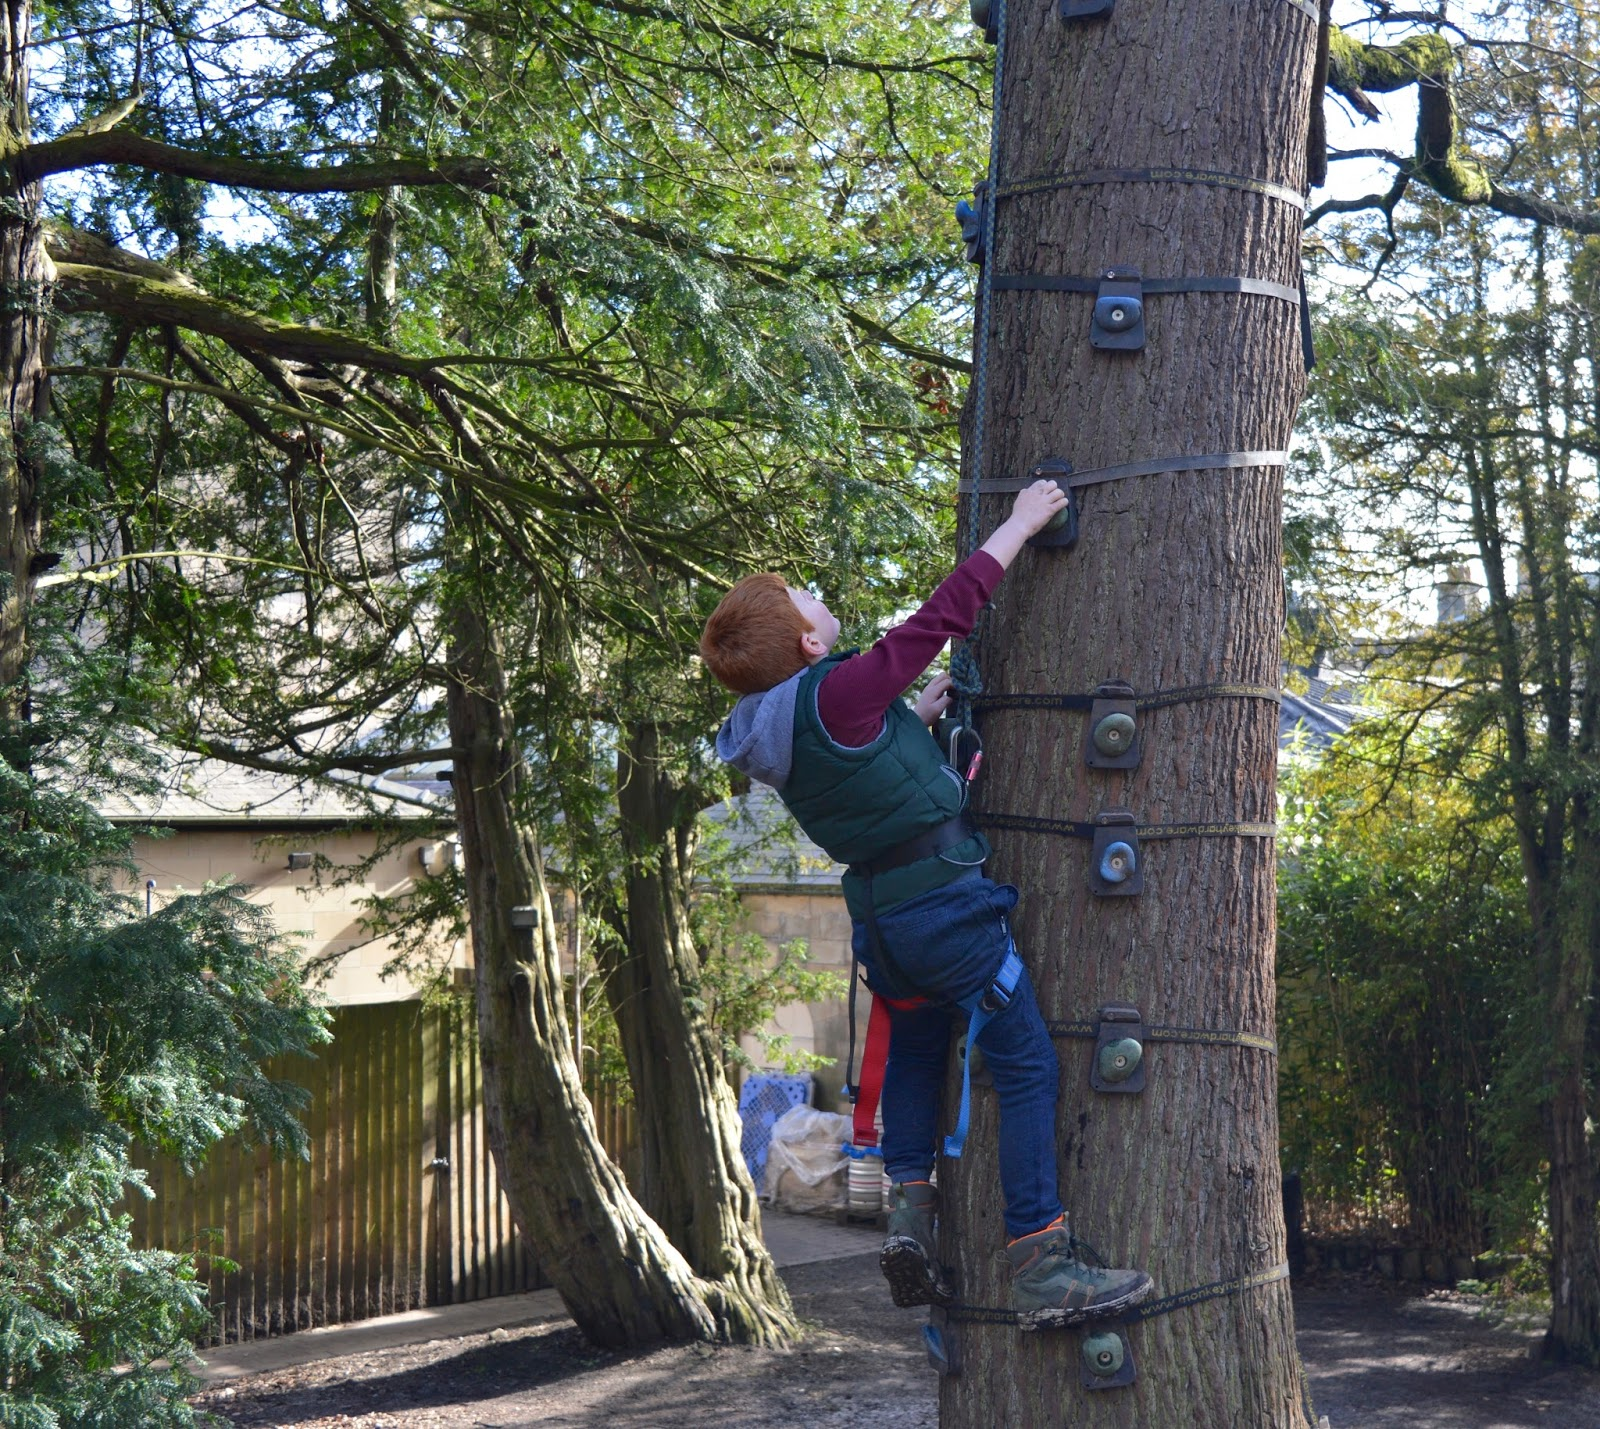 Beamish Wild | School Holiday Club & Activities in County Durham | North East England - tree creeper